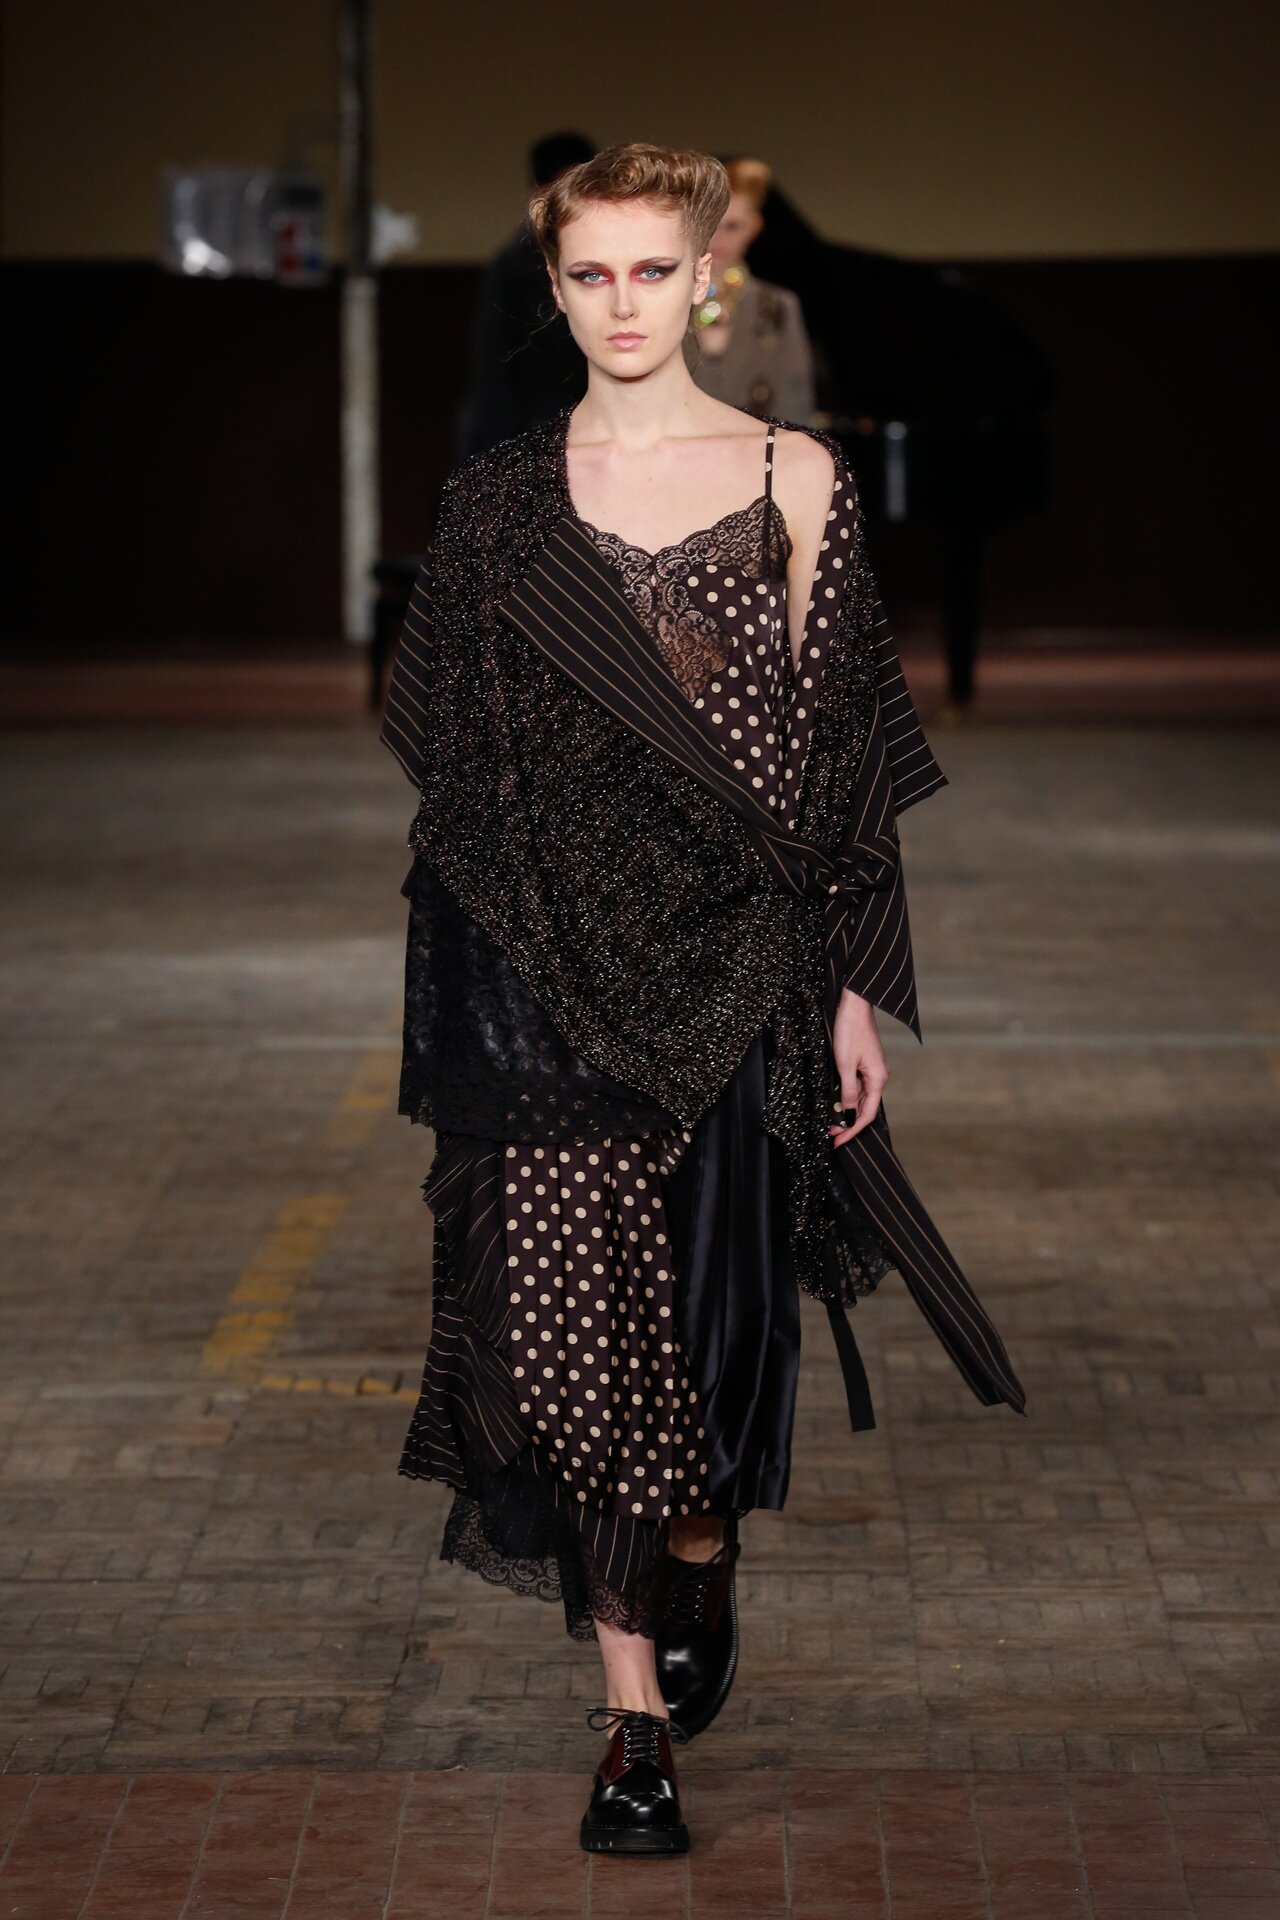 Antonio Marras Fall Winter 2018-19 Fashion Show Look 74